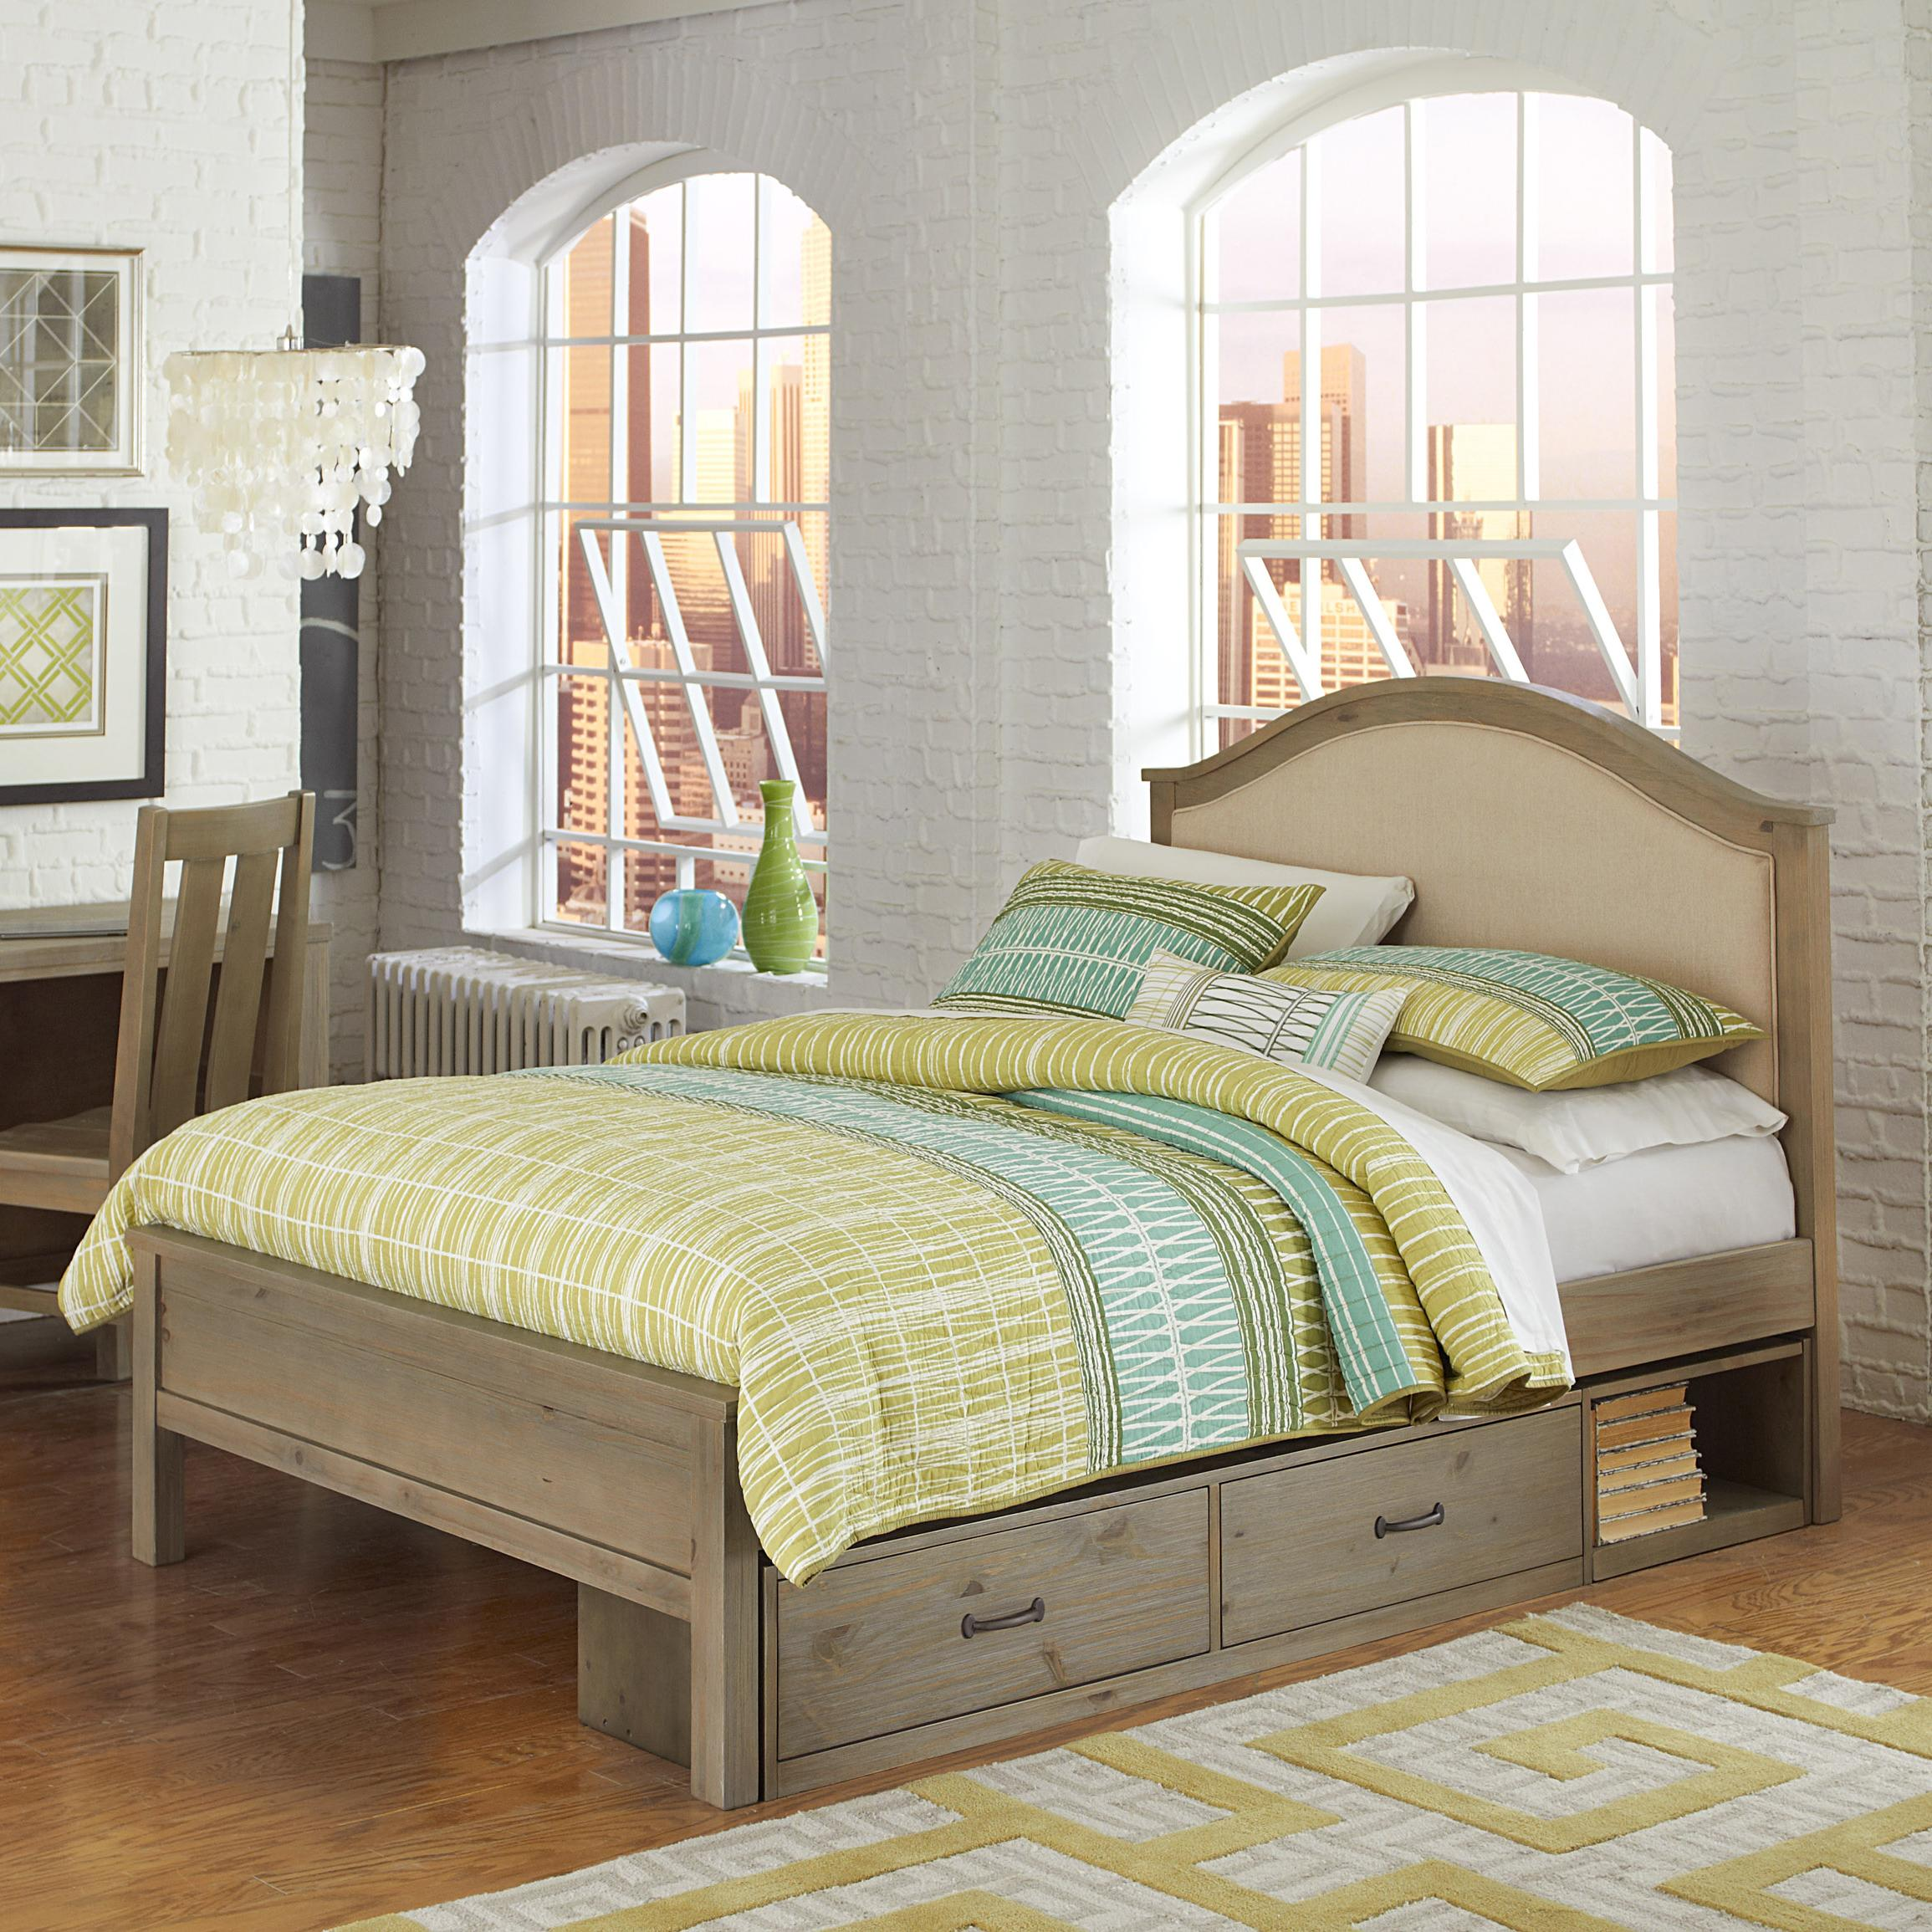 Cream Colored Bunk Beds Ne Kids Highlands Full Bailey Bed With Cream Upholstered